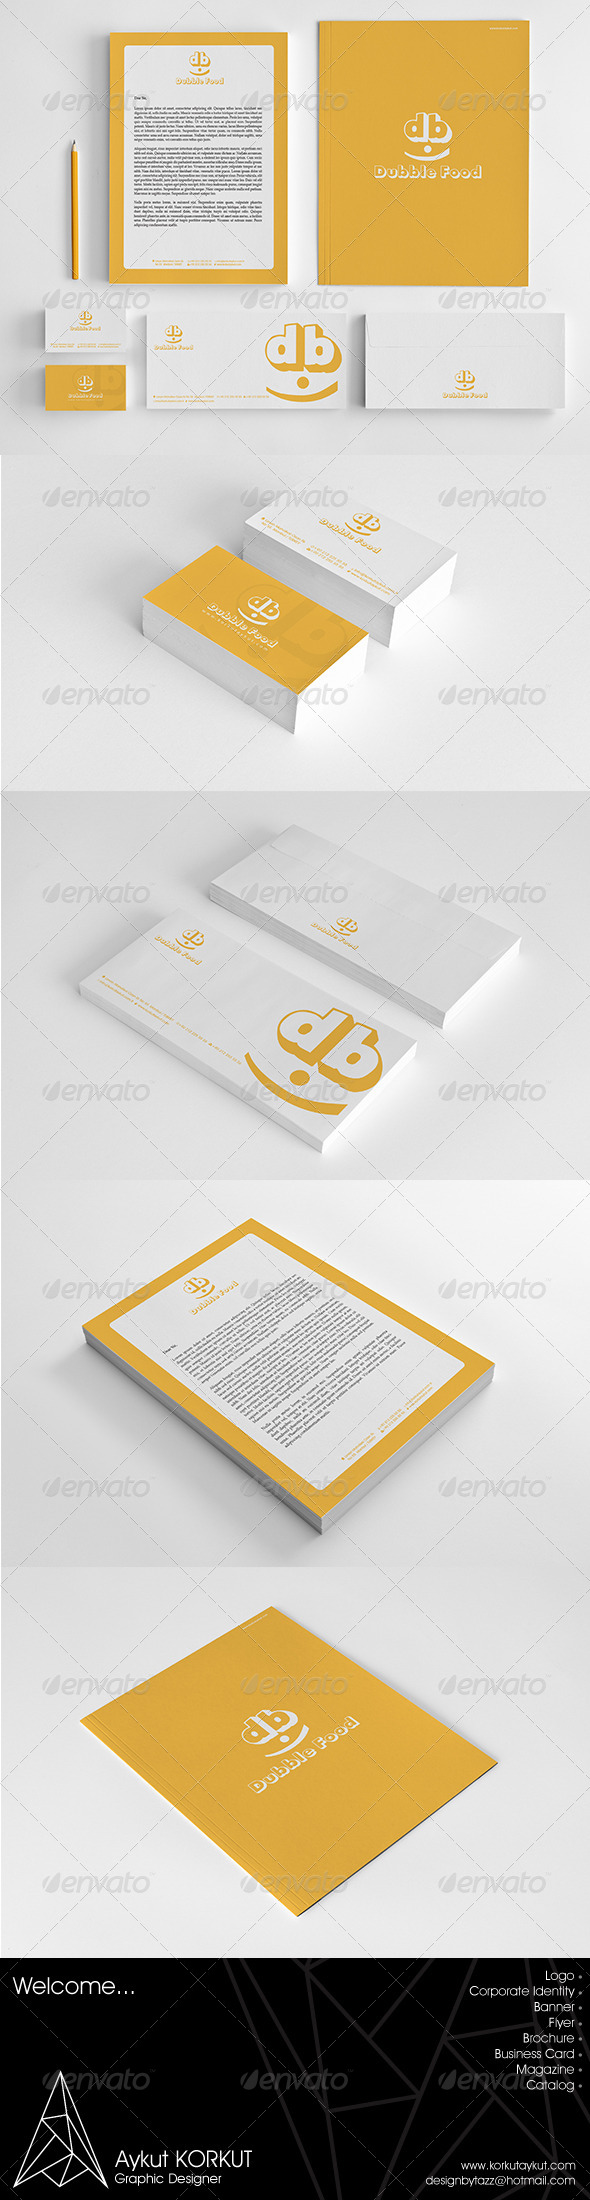 Dubble Food Corporate Identity Package - Stationery Print Templates